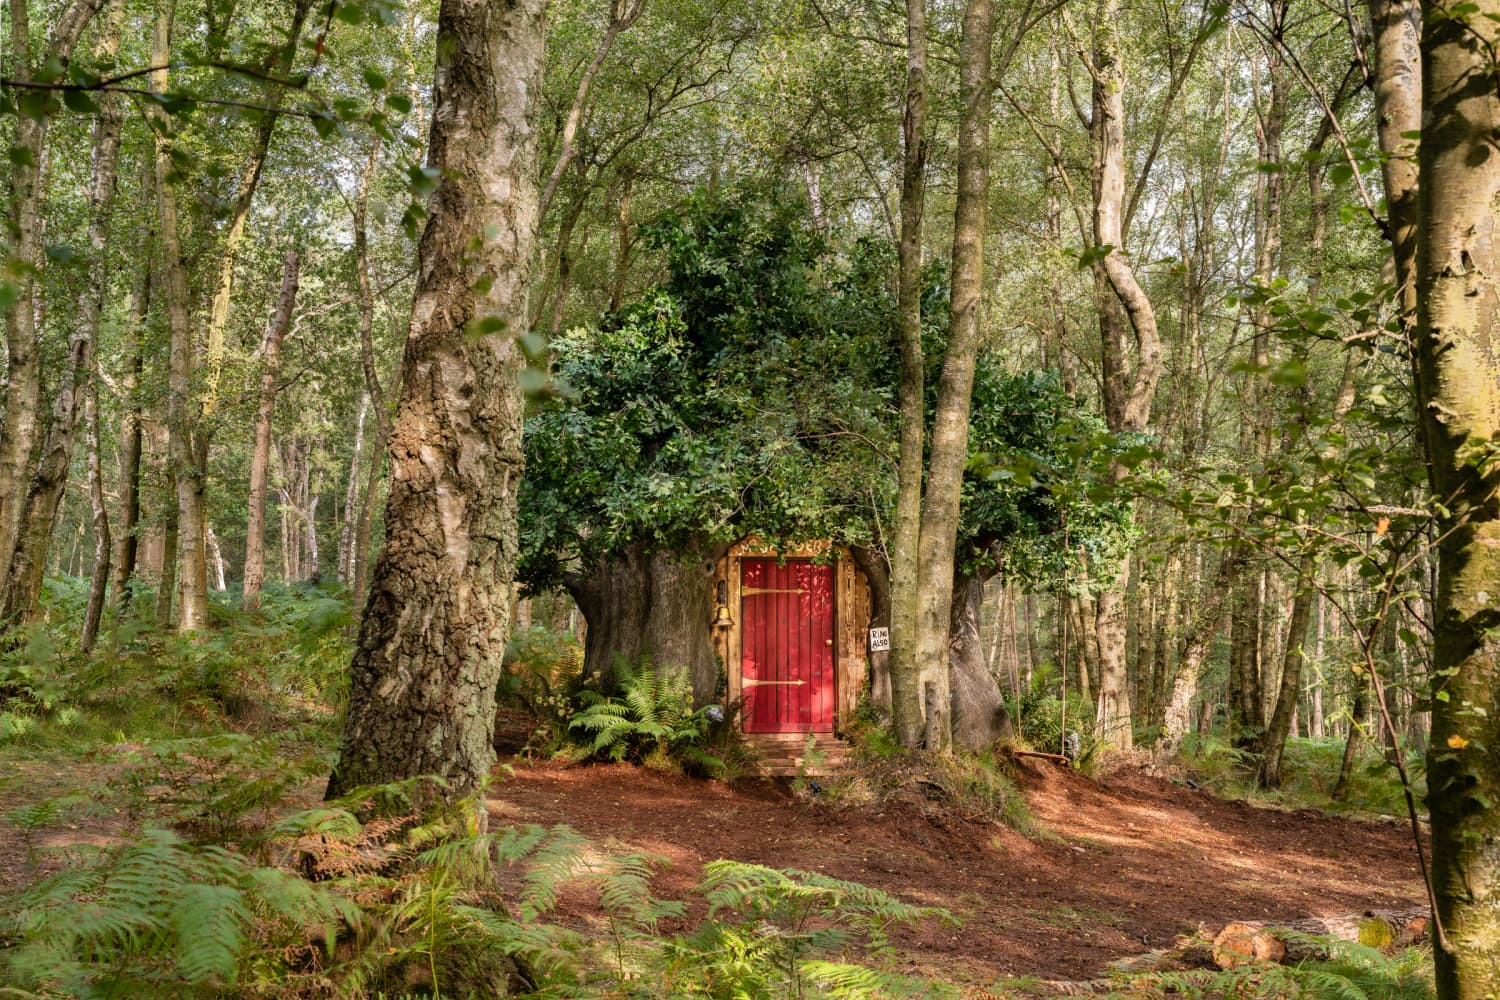 Winnie the Pooh's House Is Now on Airbnb, and It Will Make You Feel Super Nostalgic